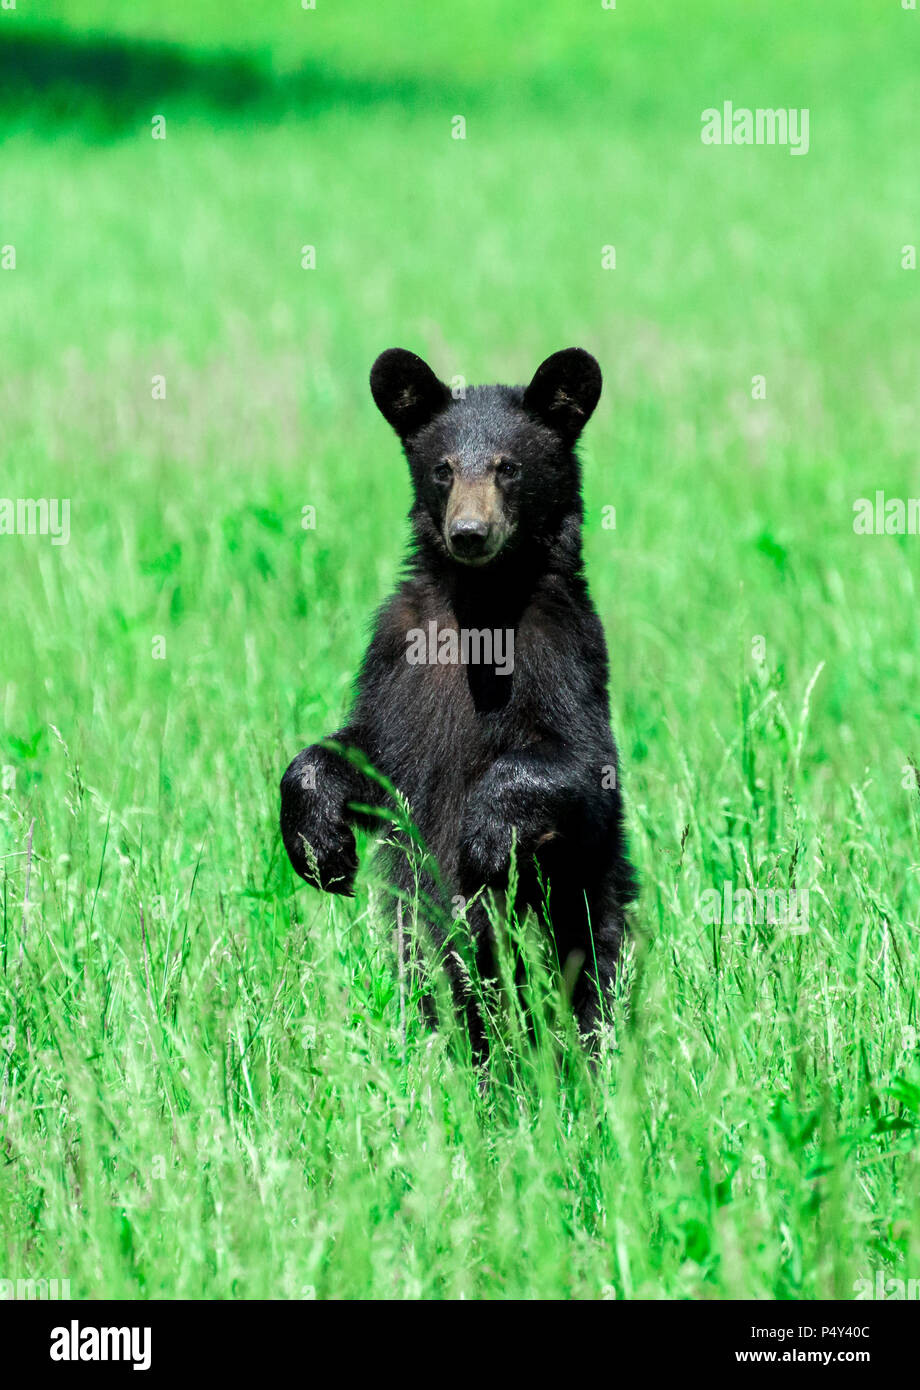 Vertical shot of a North American Black Bear standing in a green field looking toward the camera. - Stock Image